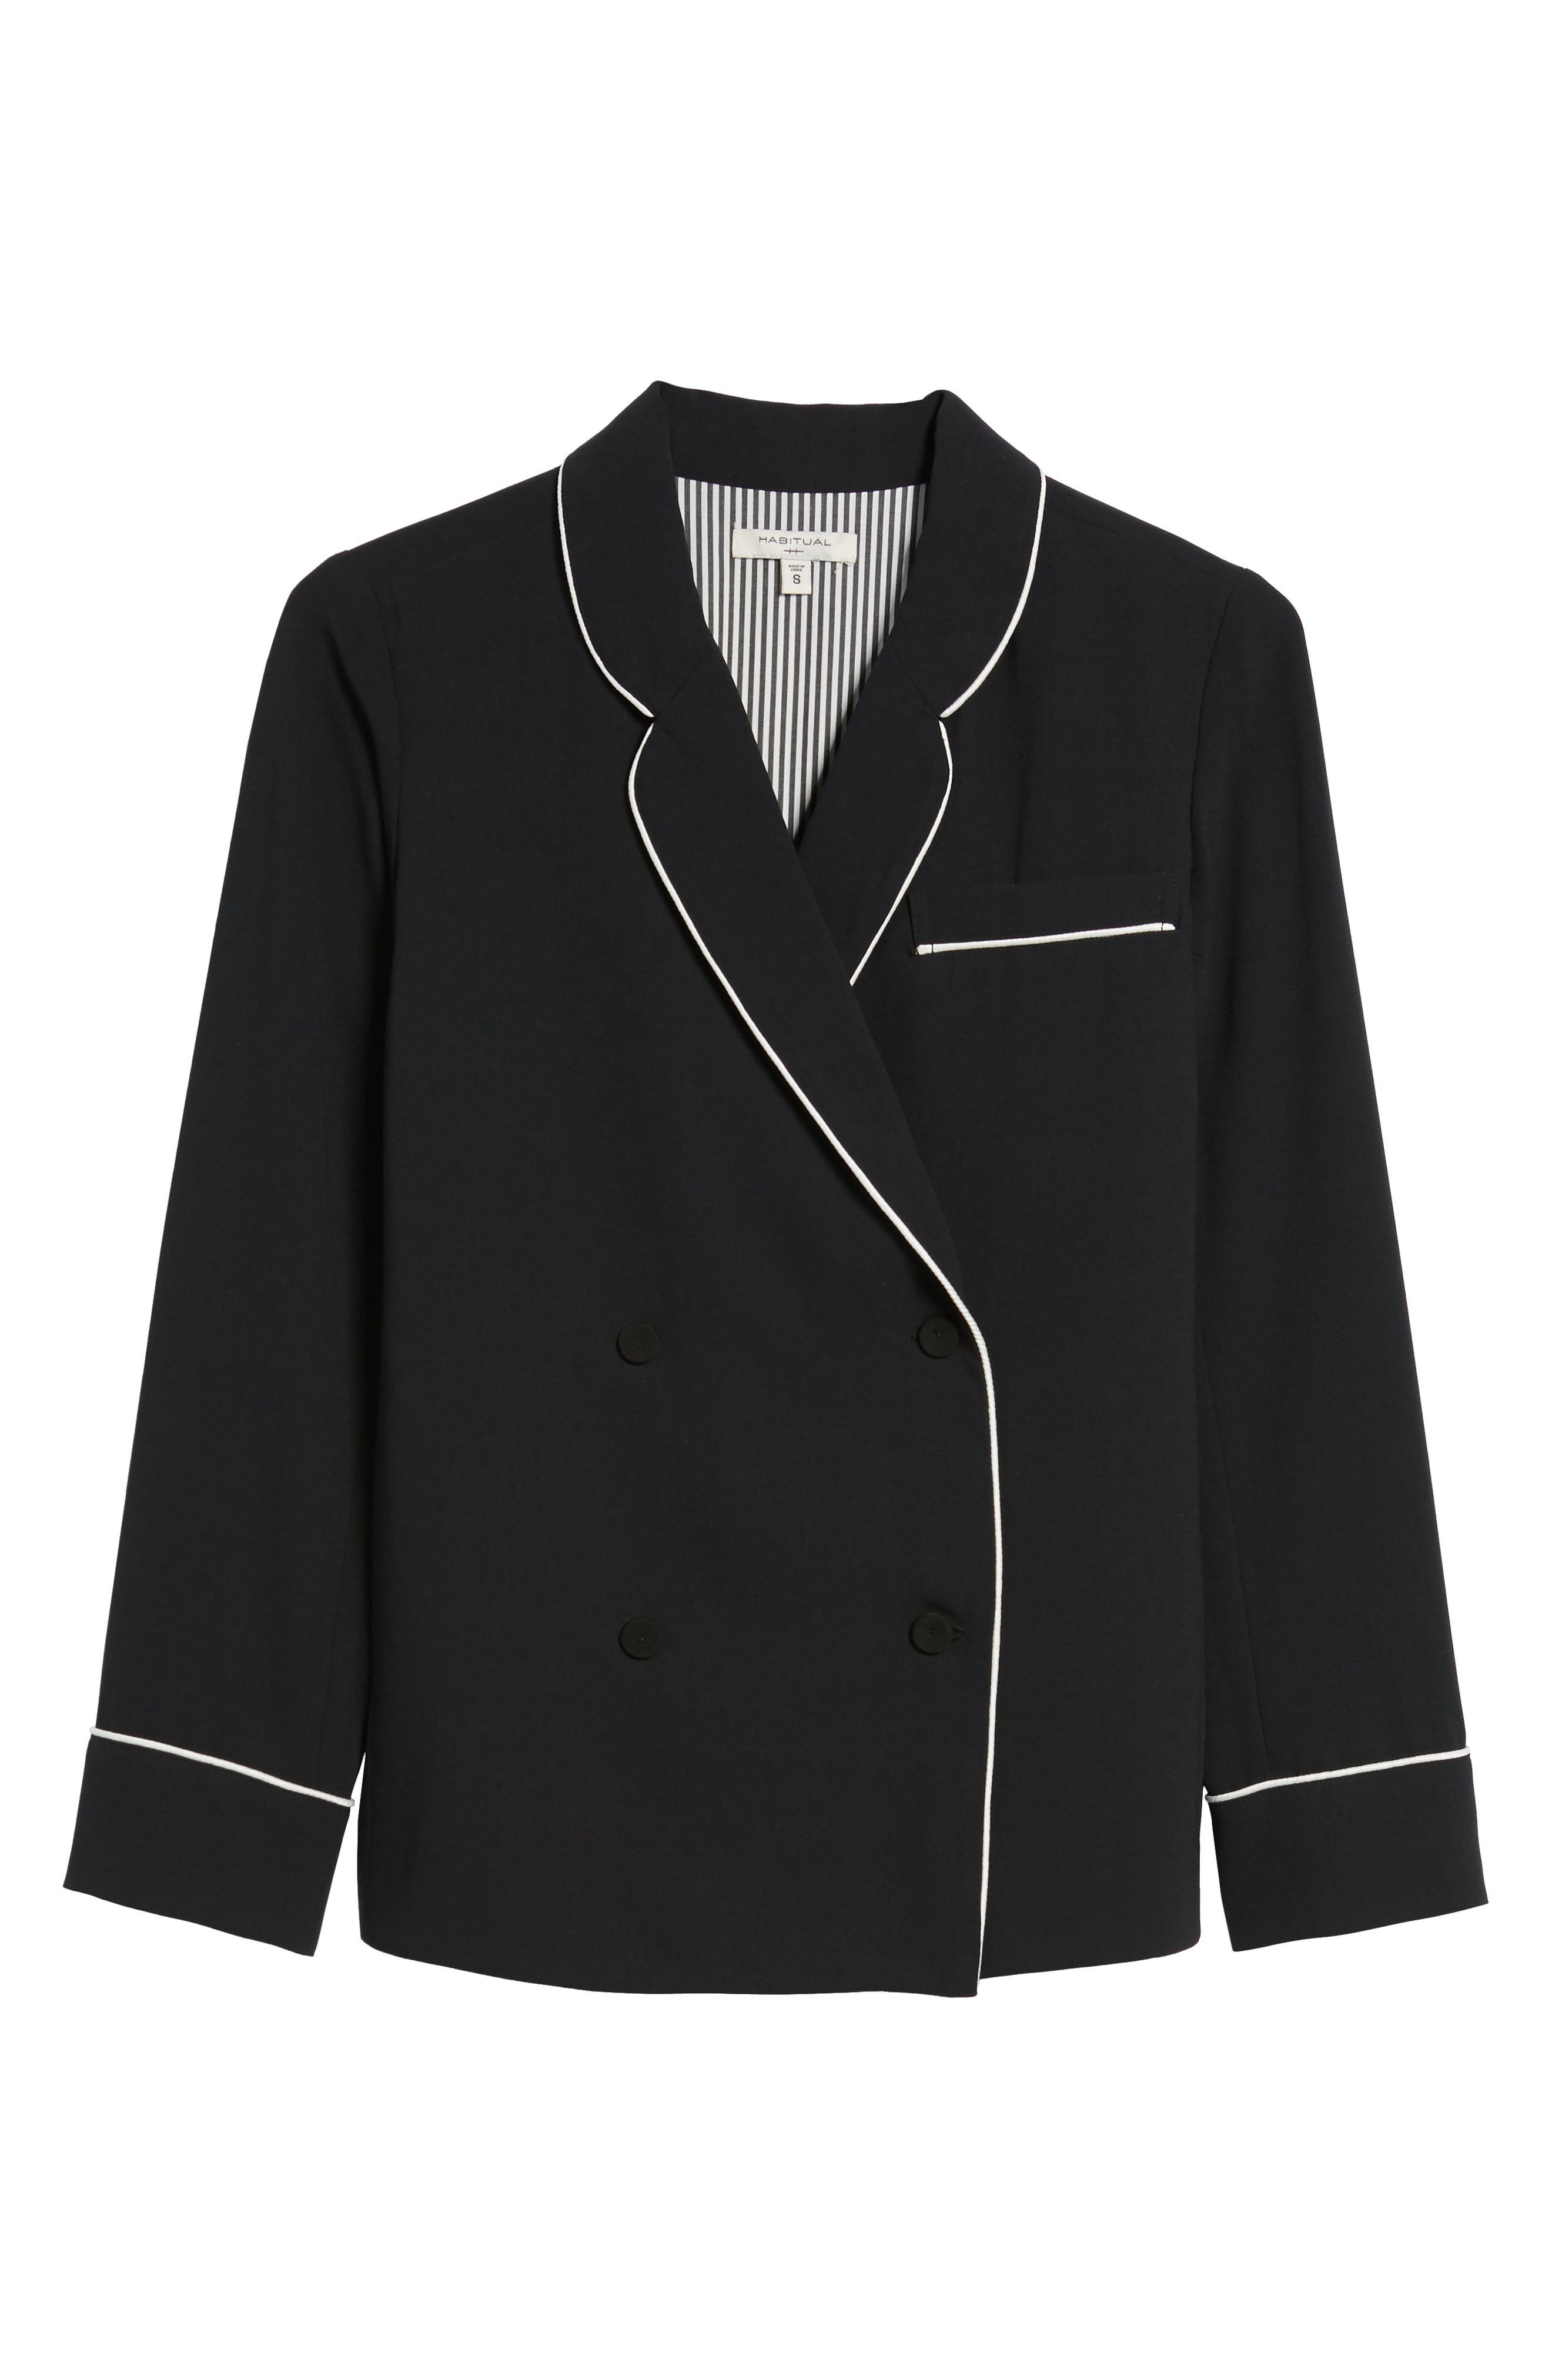 Double Breasted Jacket,                             Alternate thumbnail 6, color,                             Black/ Bright White Piping